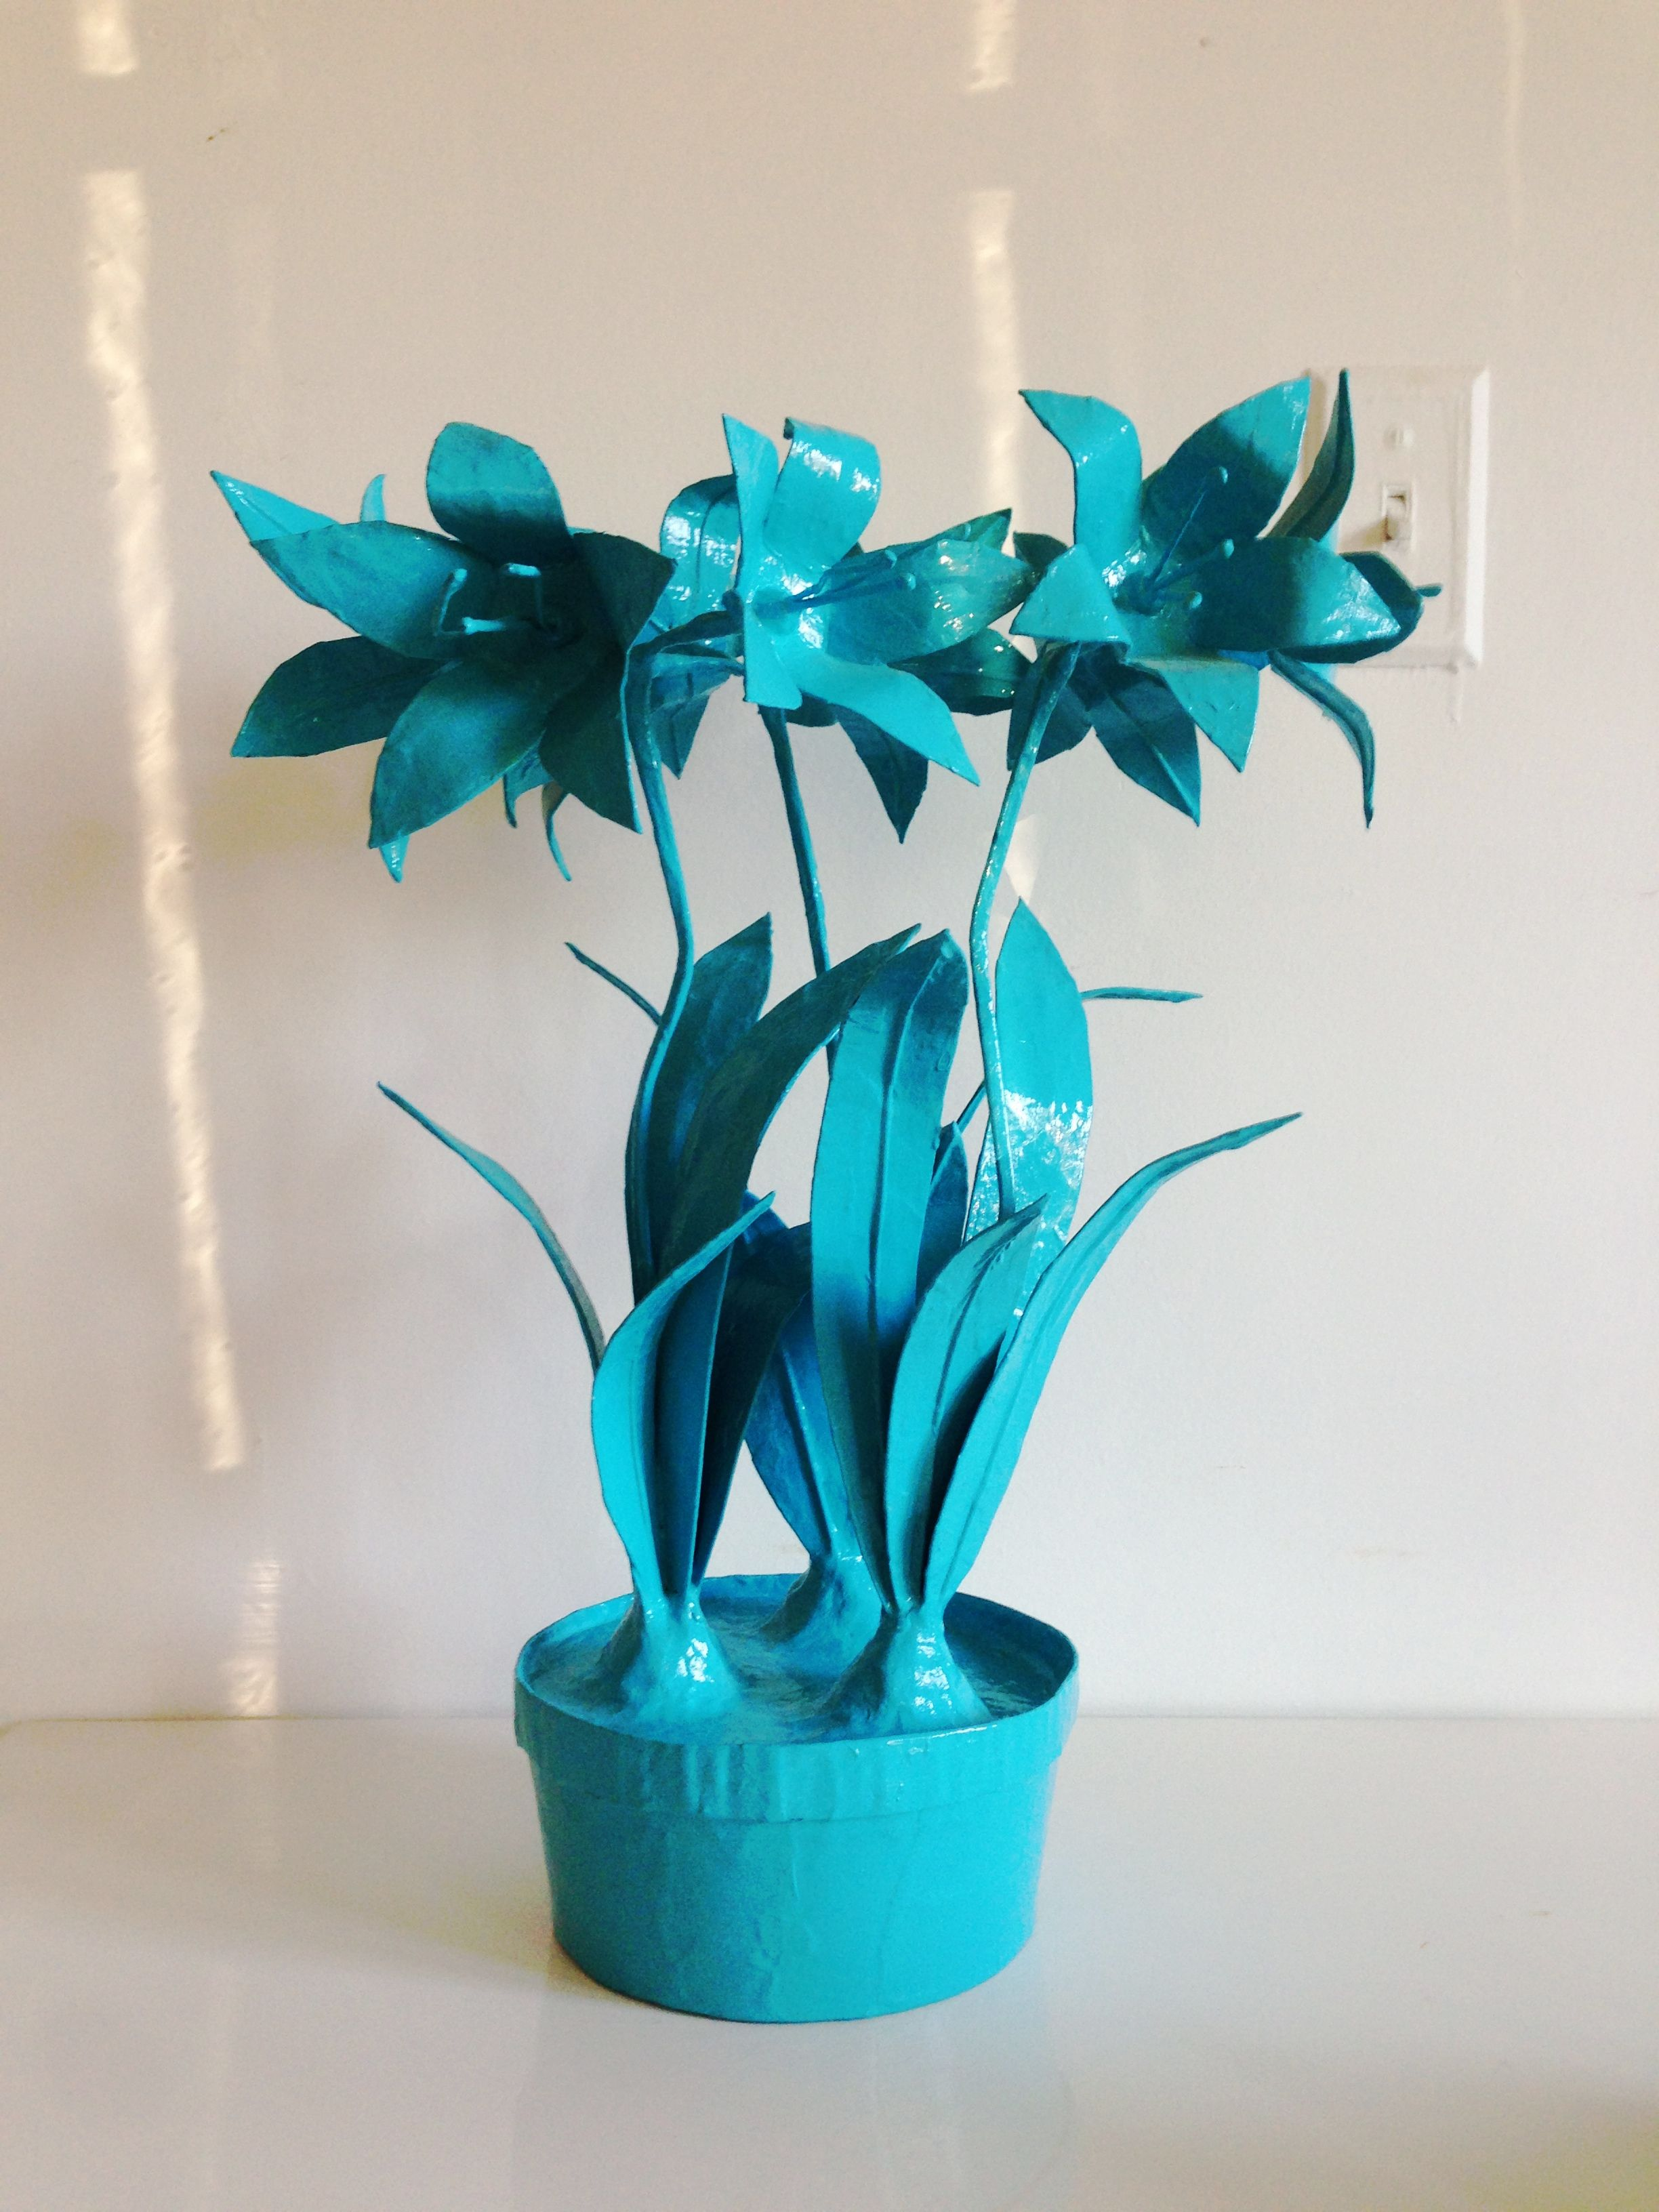 Stray Dog Designs Papier Mch Flower Pot Things We Stock In The